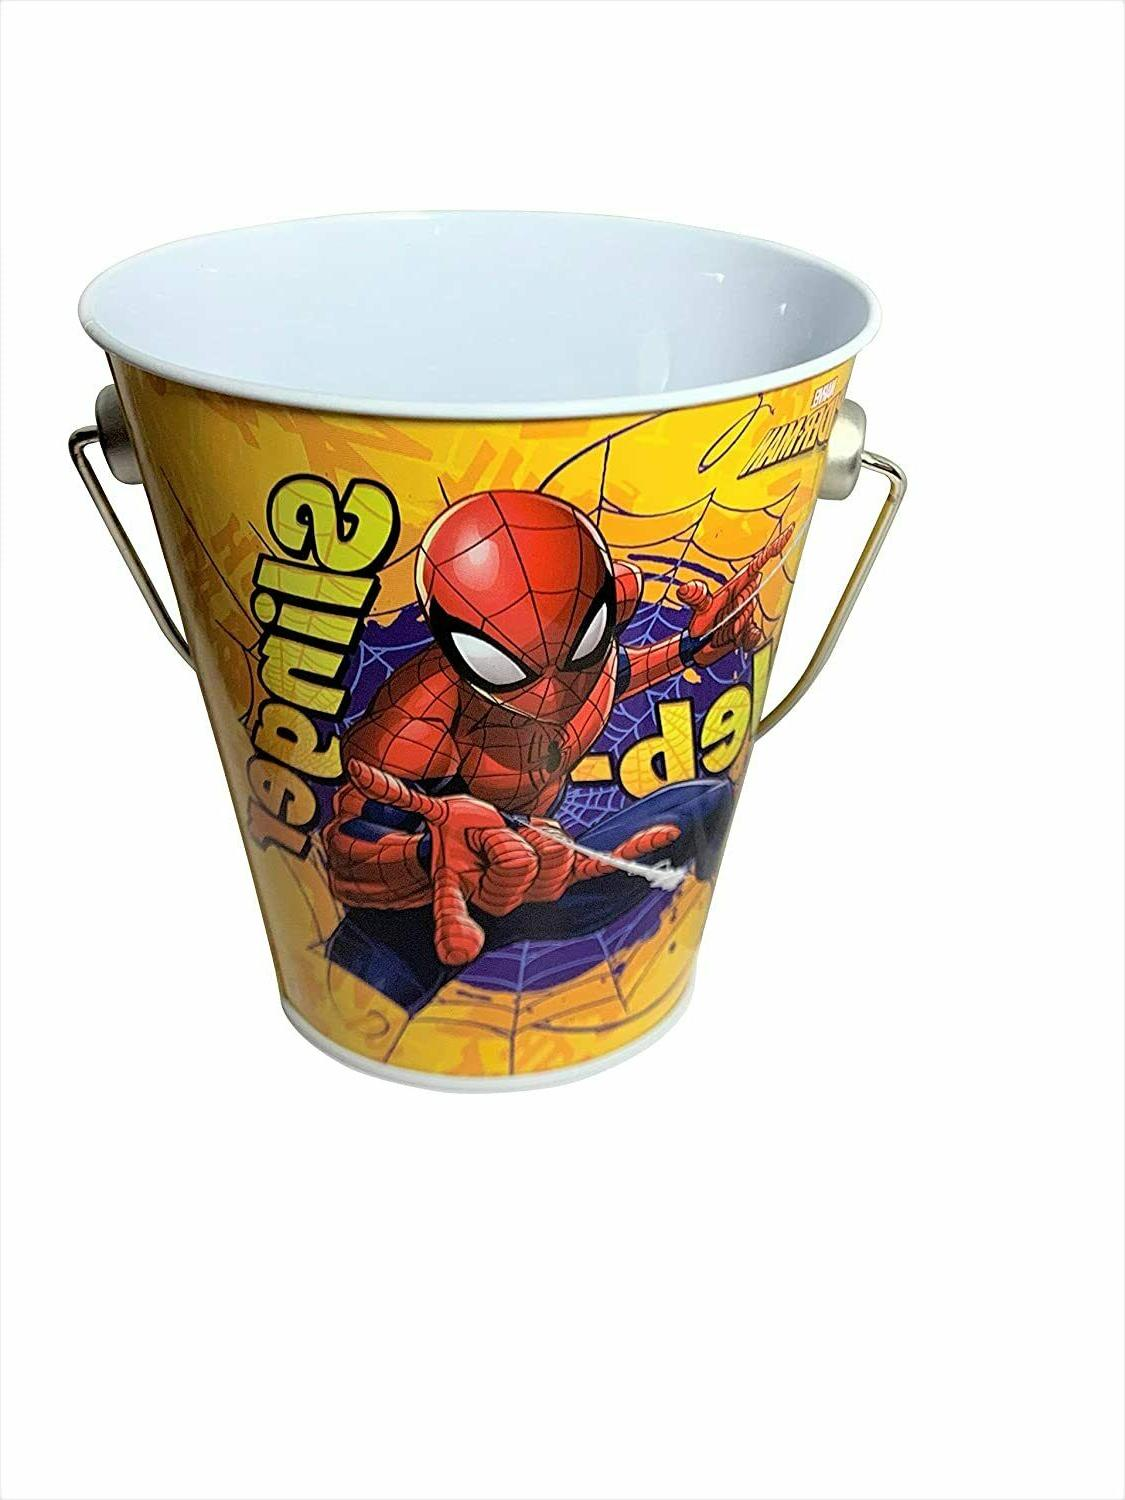 Set Of Buckets Favors Or Center Spider-Man